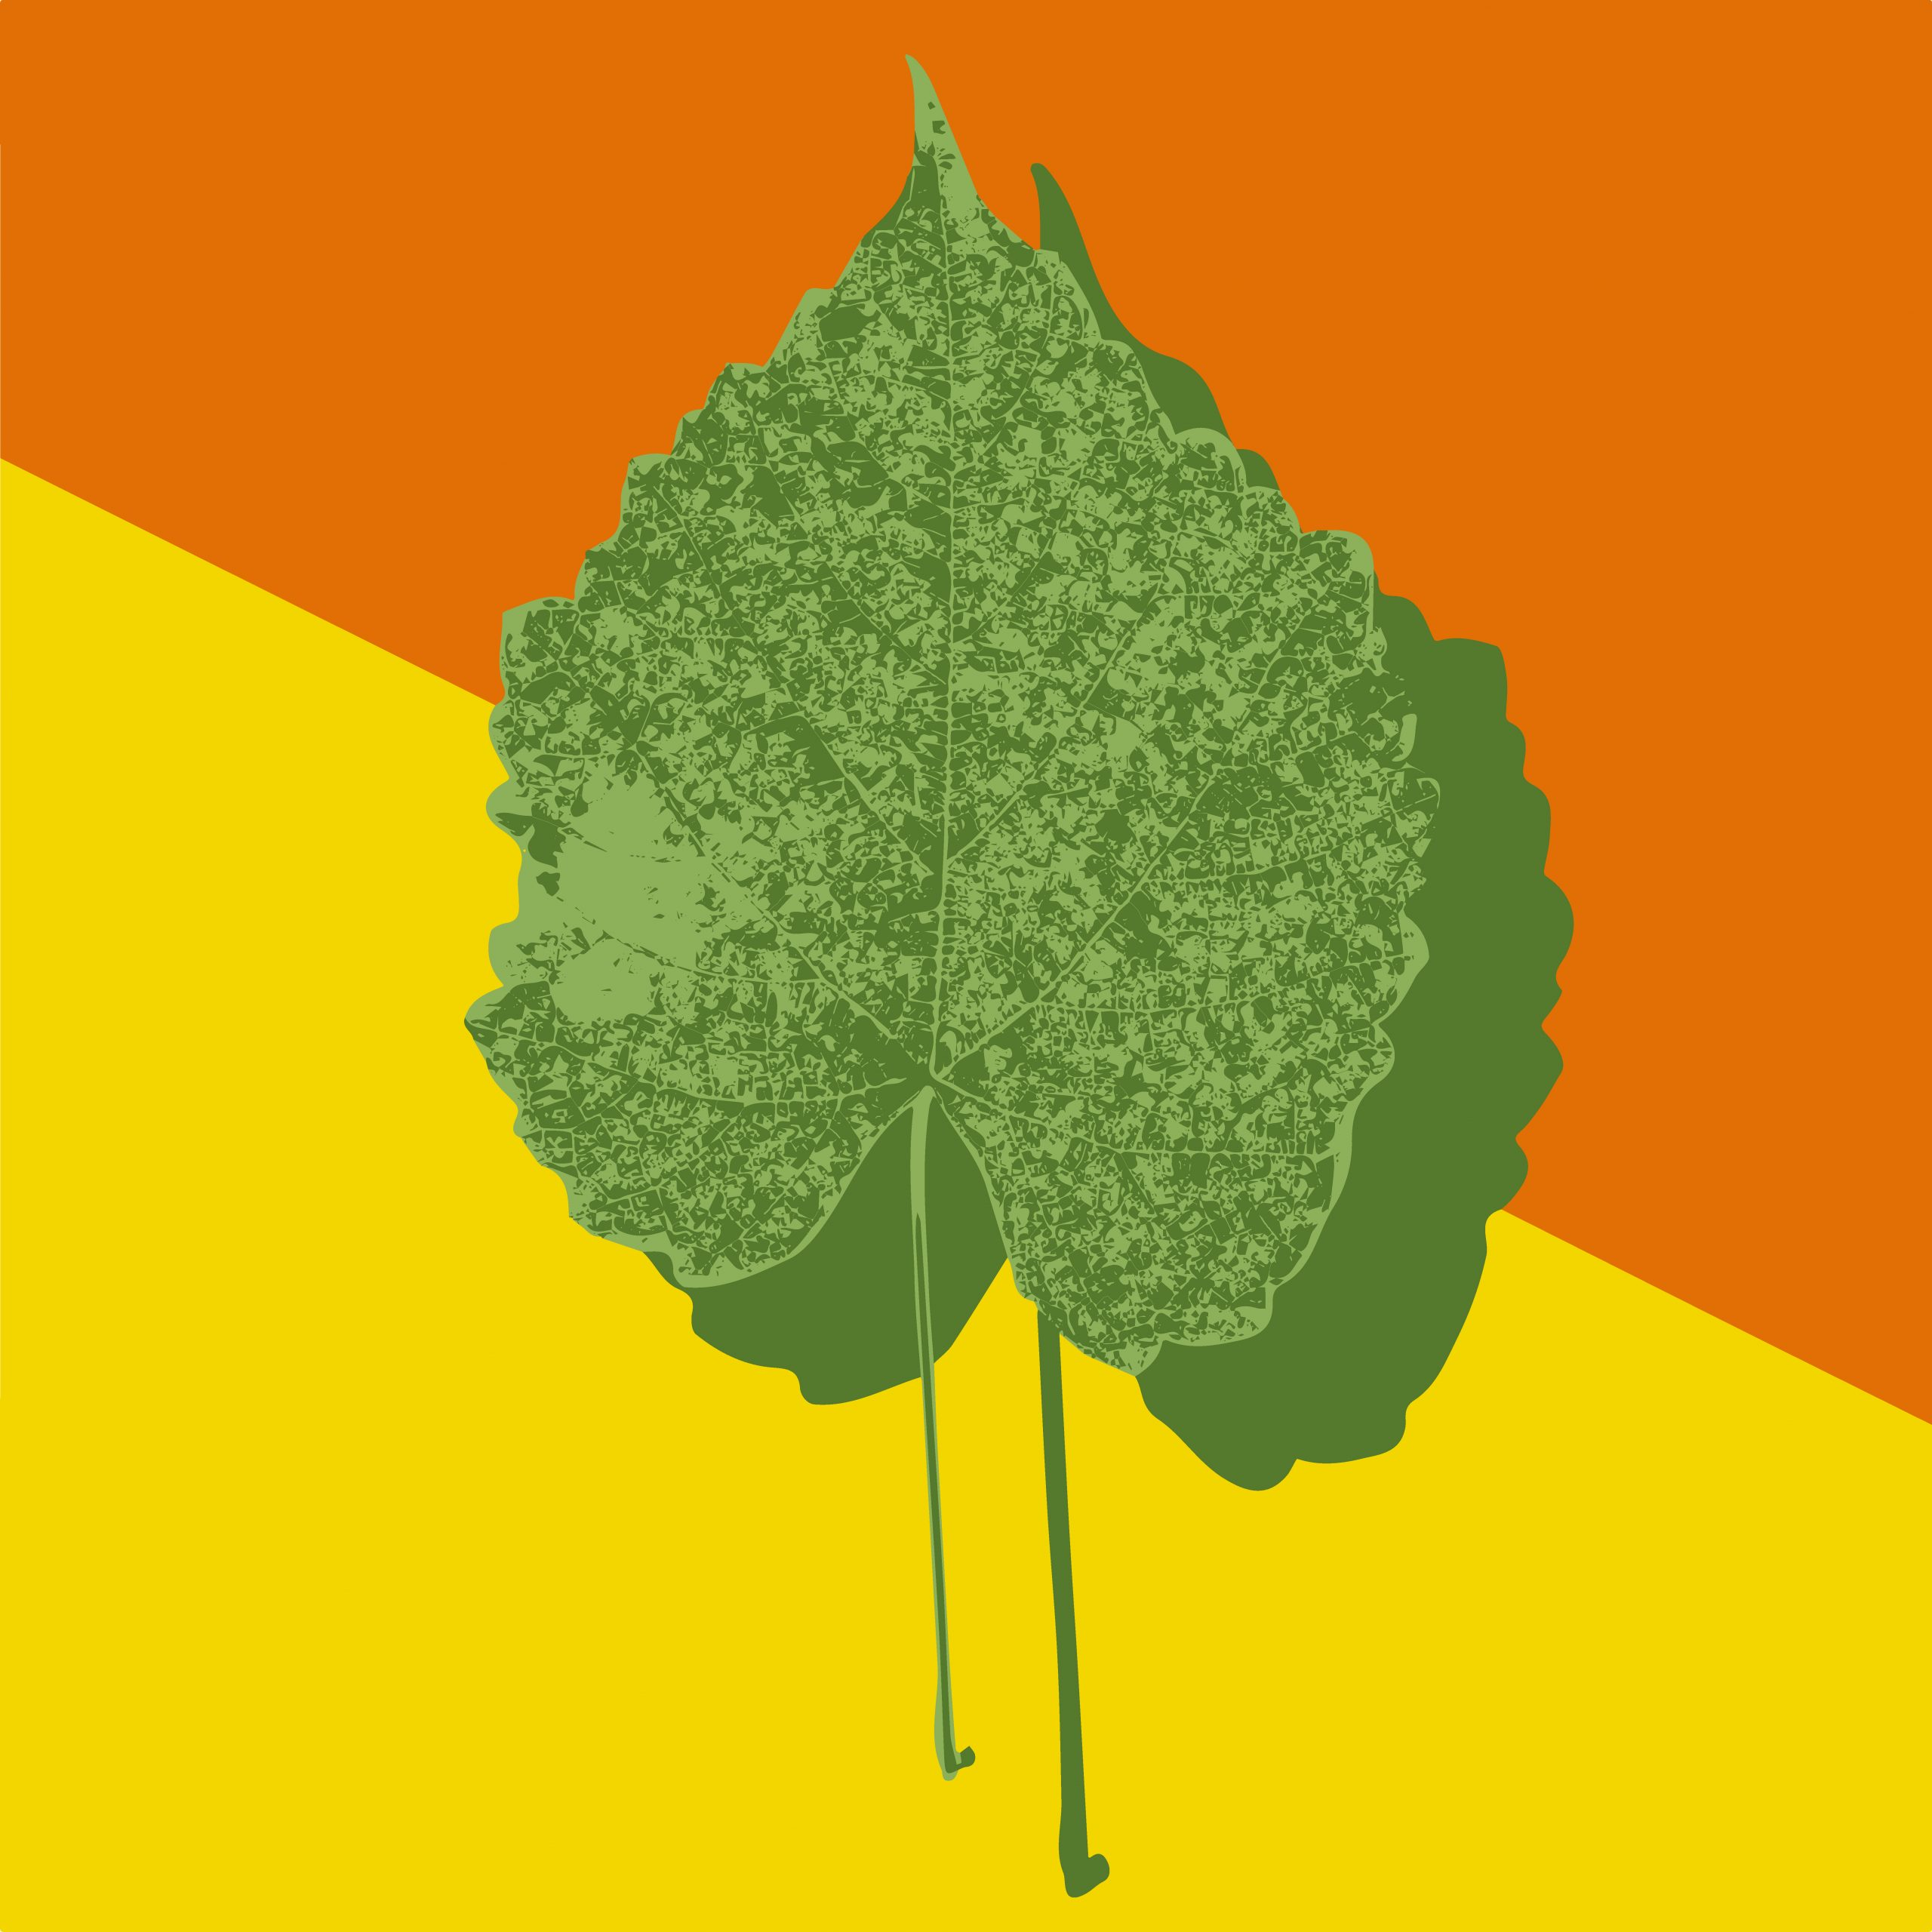 A leaf illustration